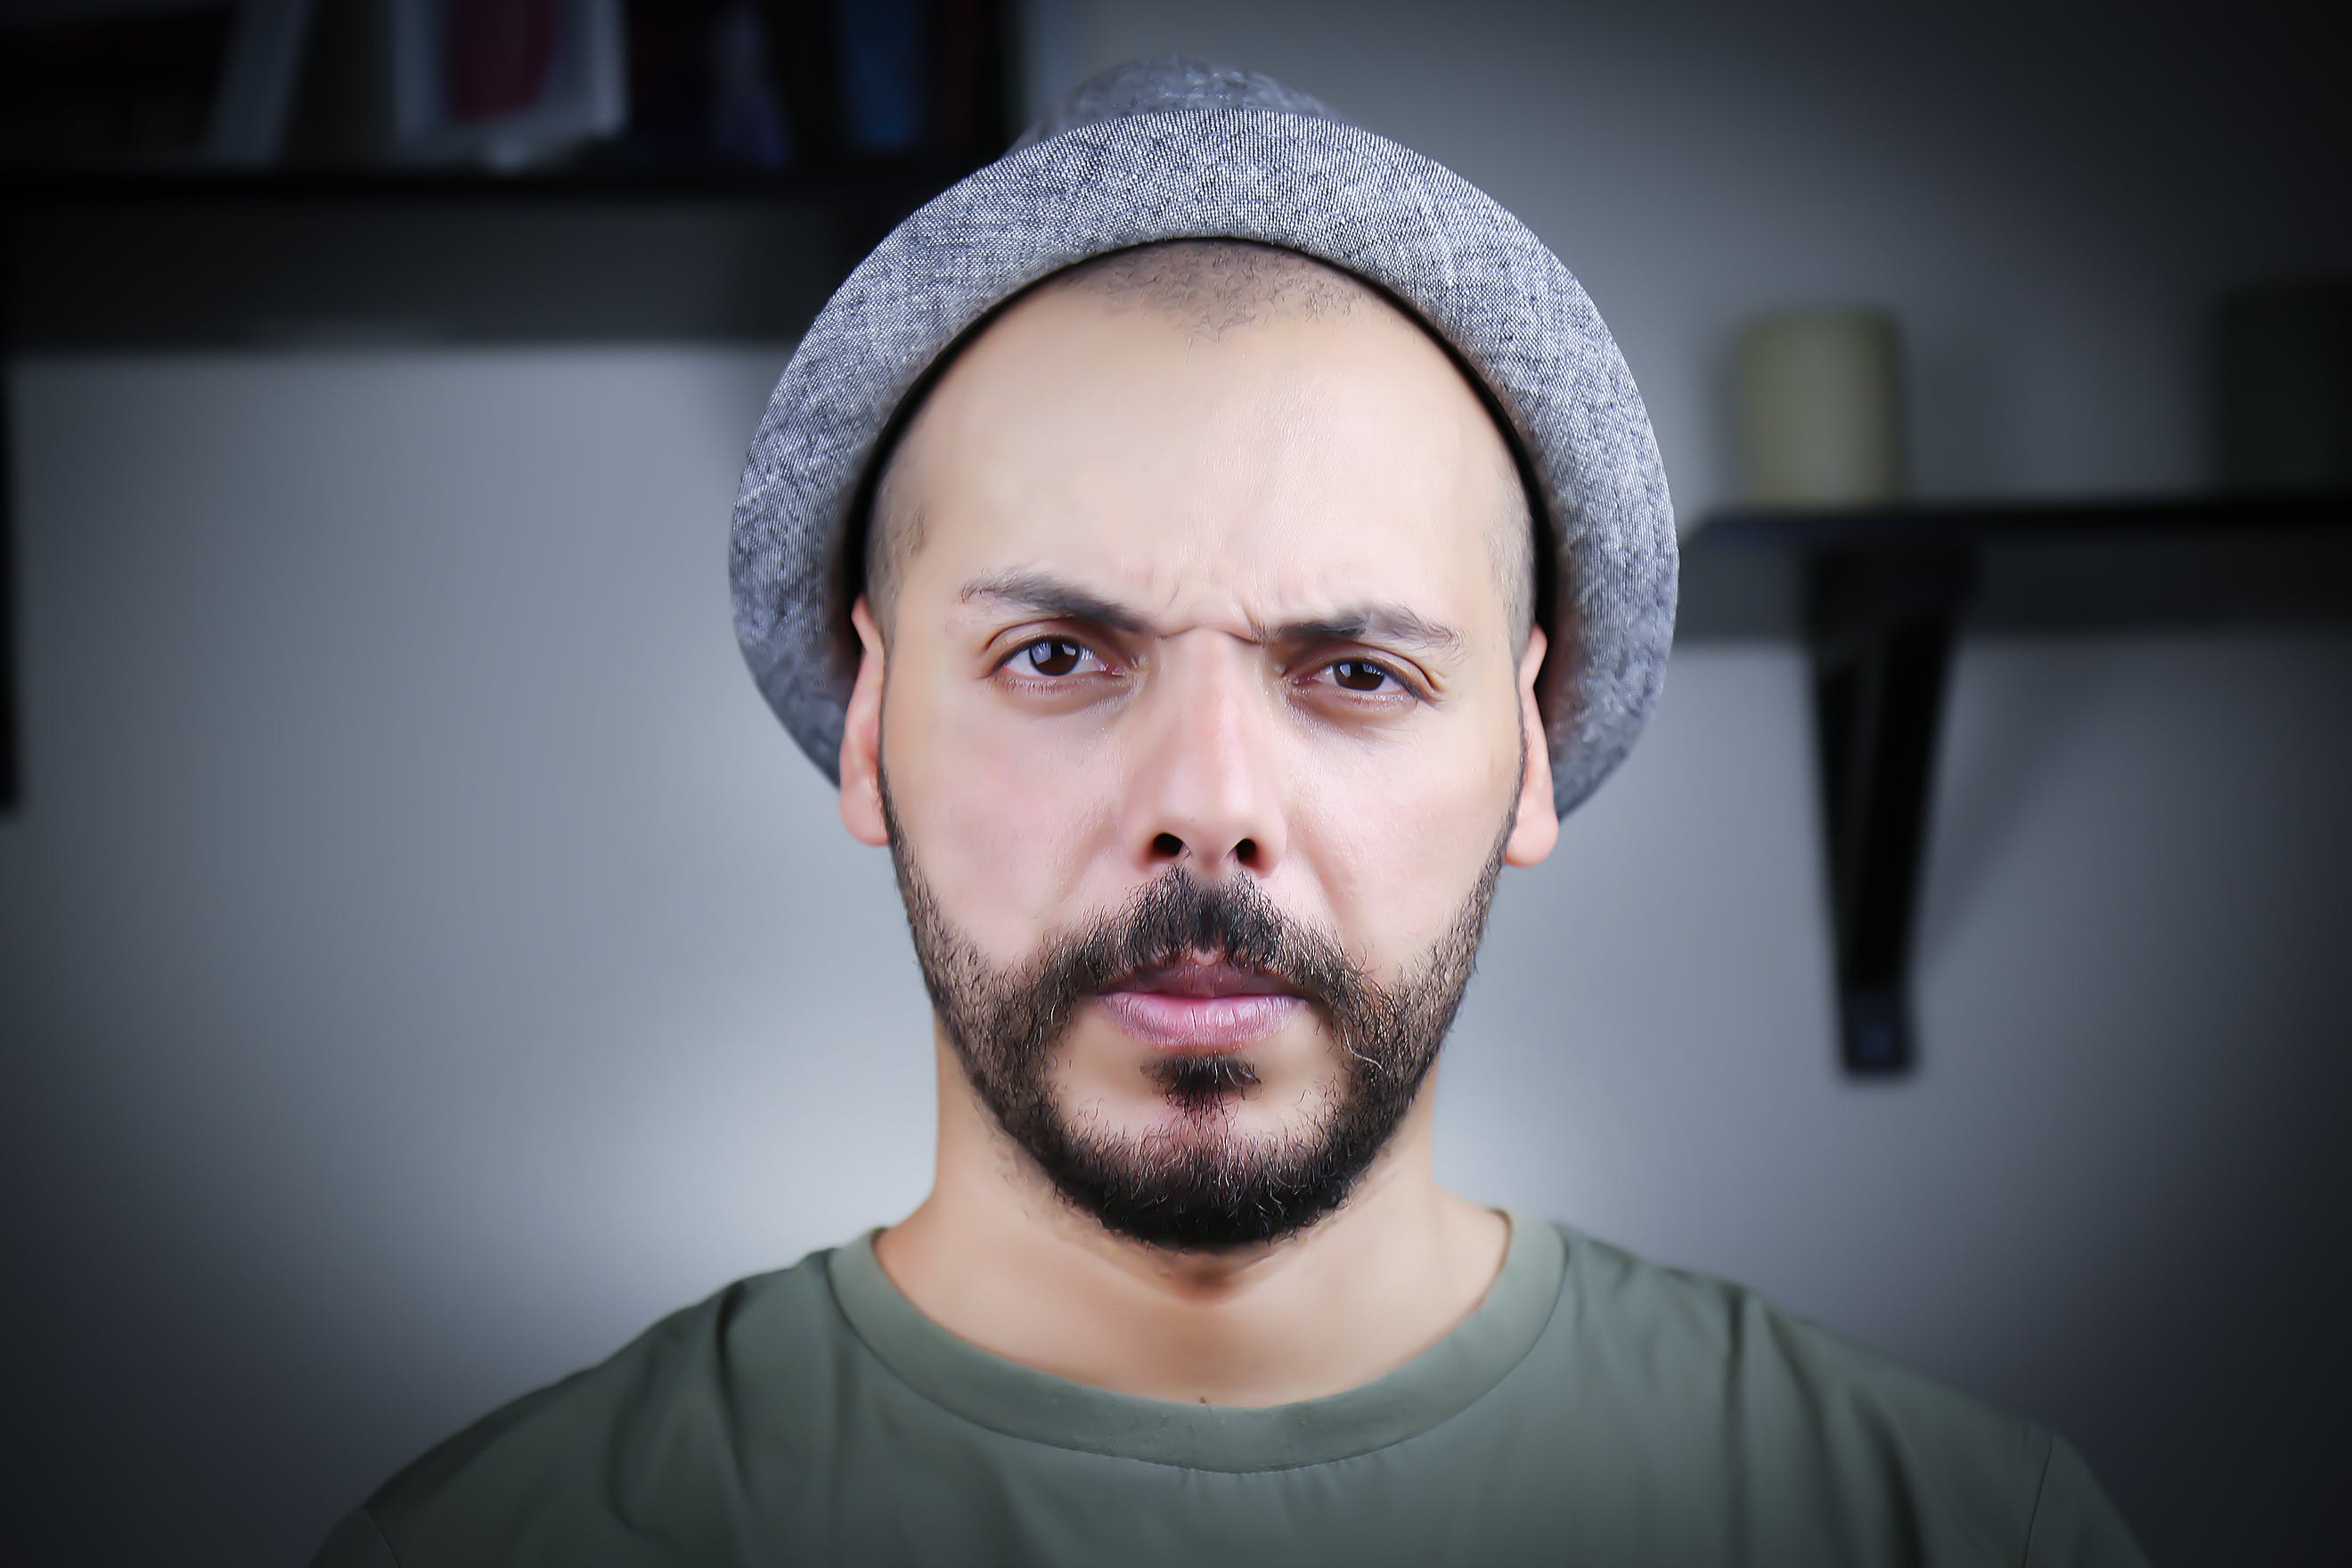 Free stock photo of person, blur, hat, face